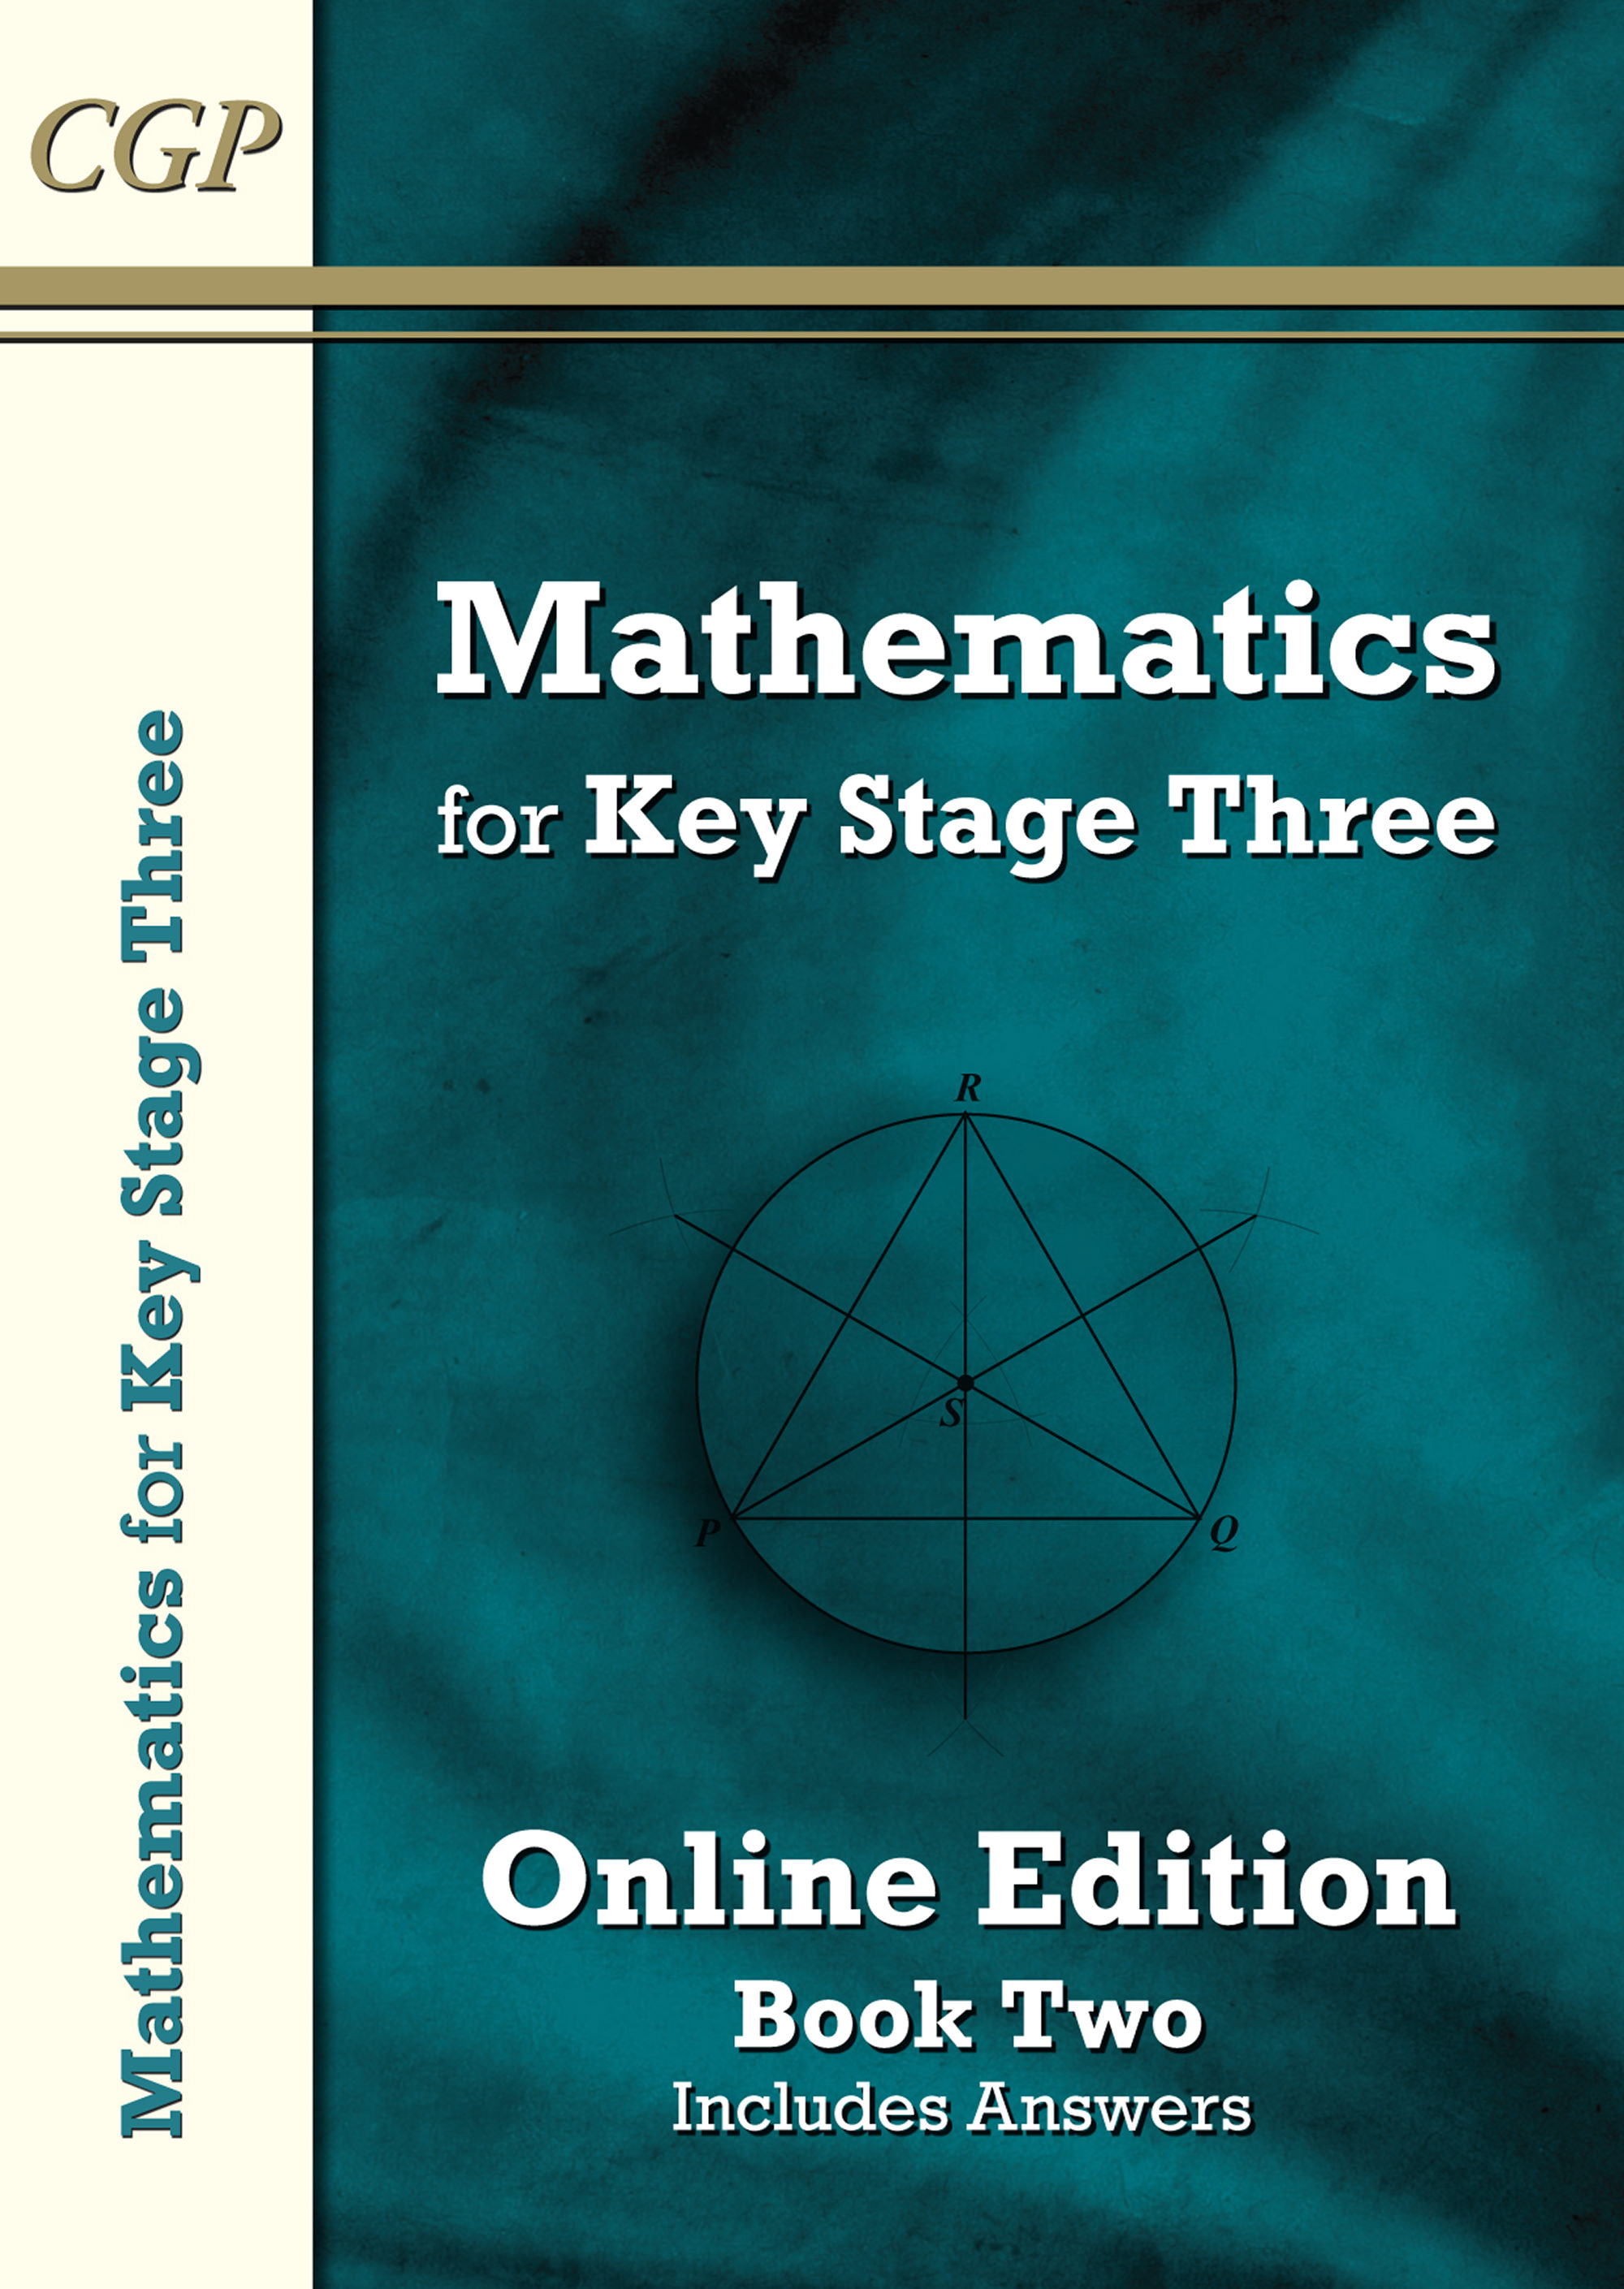 M2N31G - KS3 Maths Textbook 2: Student Online Edition (with answers)